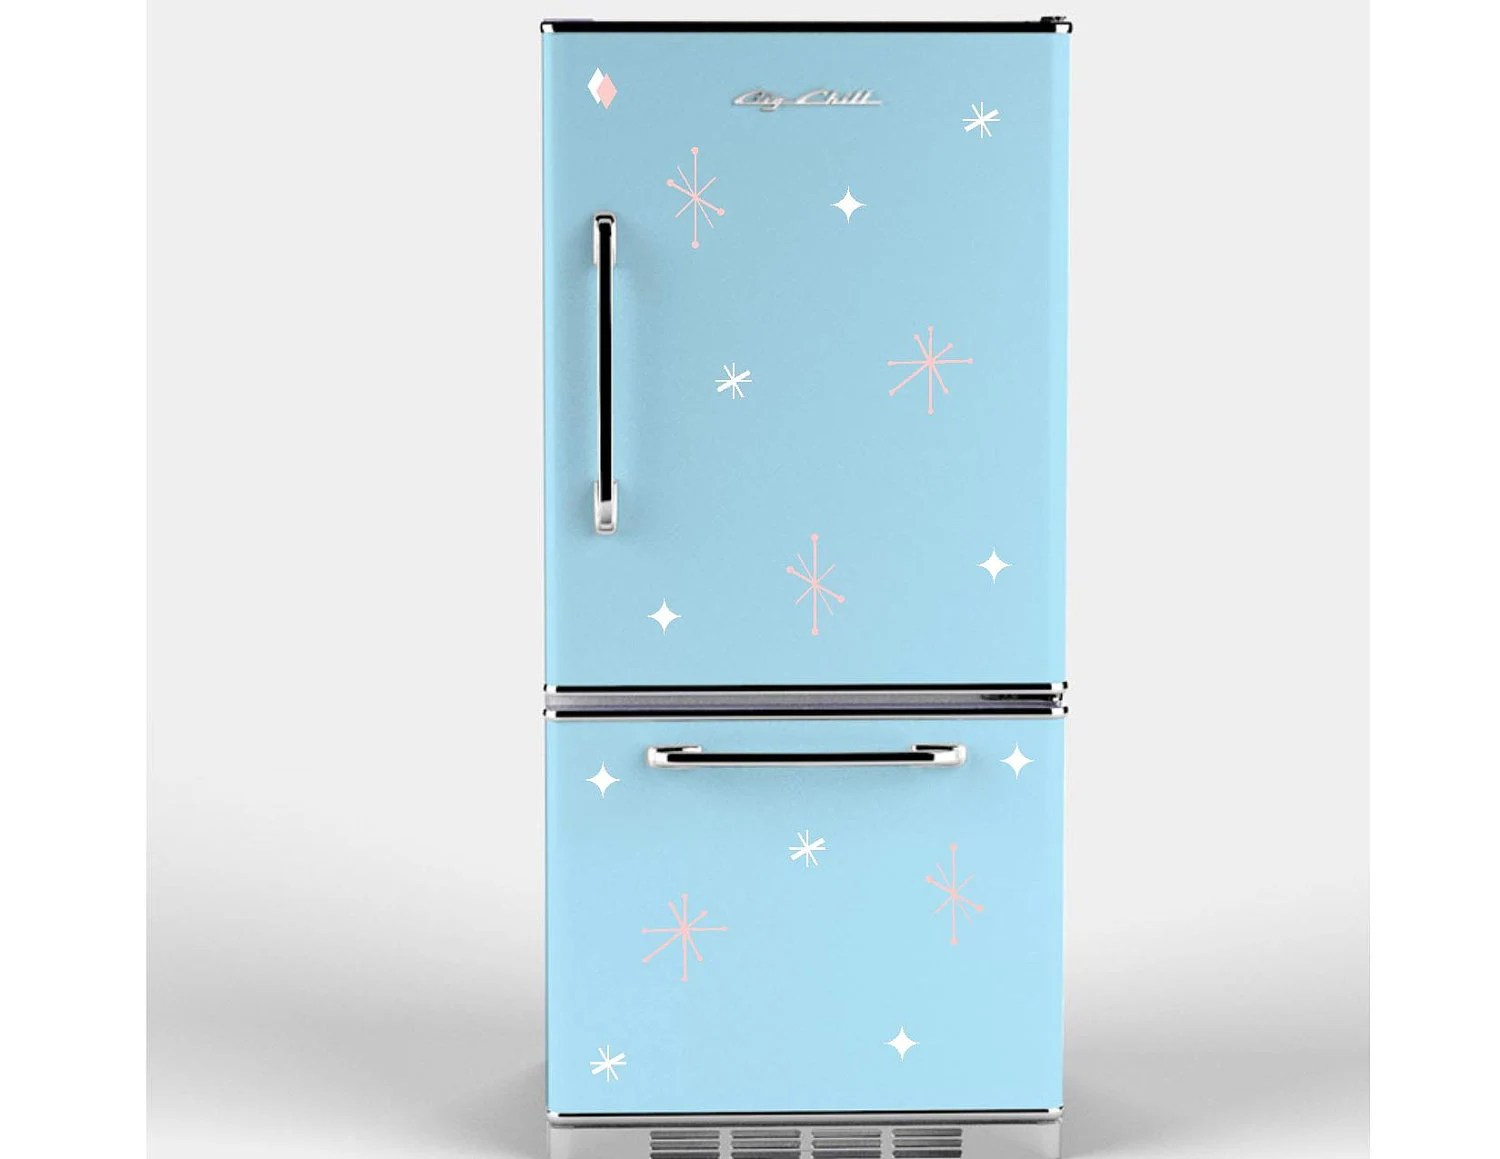 Retro Stars Appliance Decals For Your Refrigerator By GoodMommyLtd